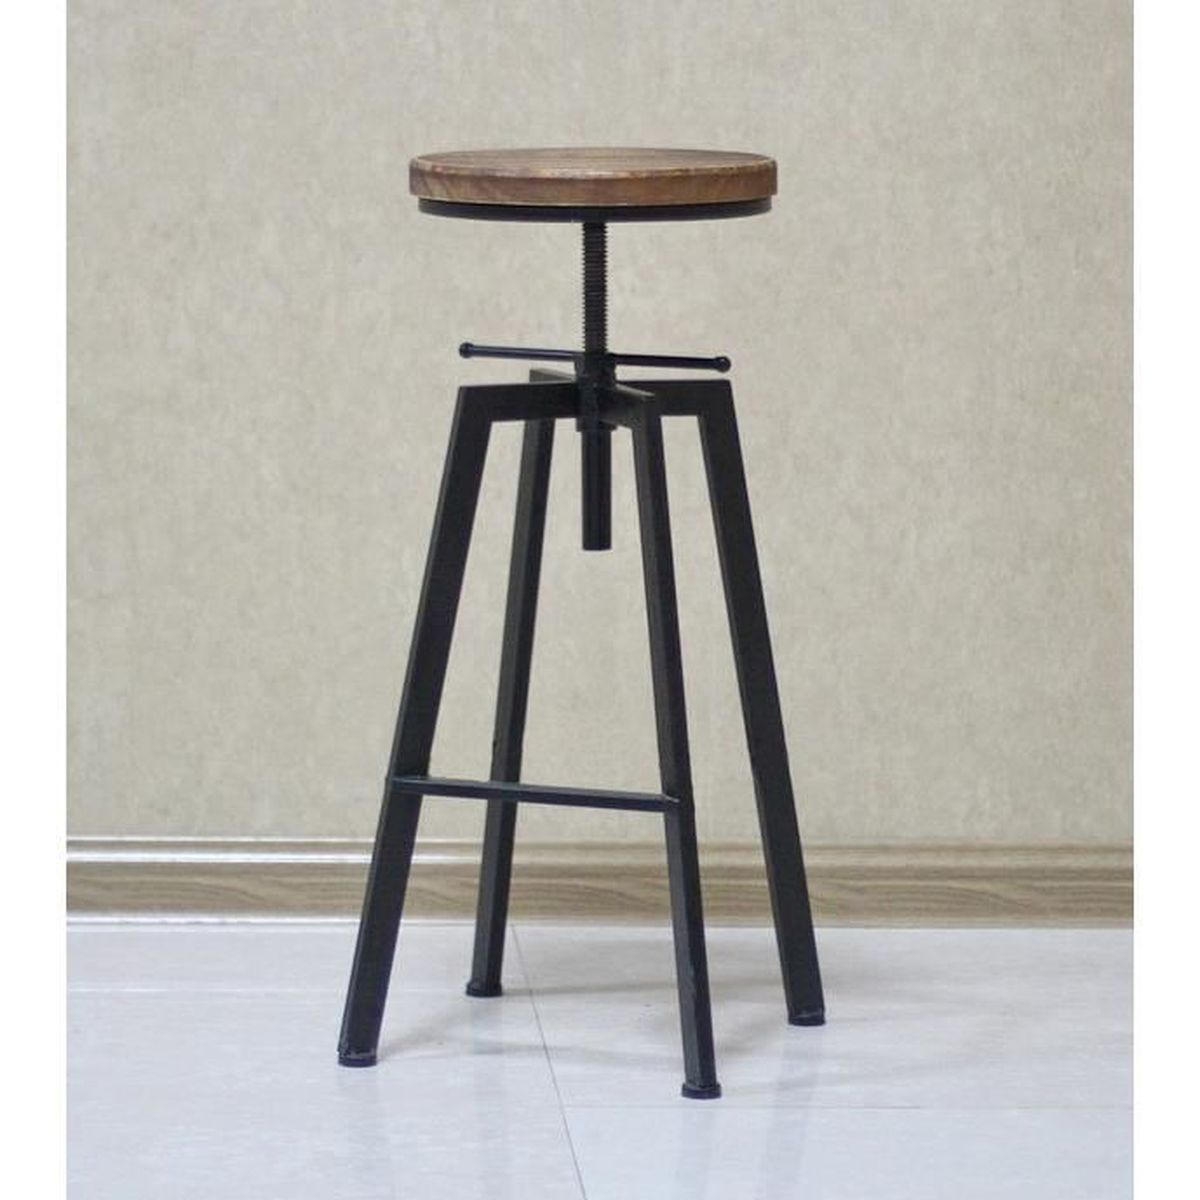 tabouret de bar yako 1 sur vis design luxe industriel design retro vintage m tal bois achat. Black Bedroom Furniture Sets. Home Design Ideas